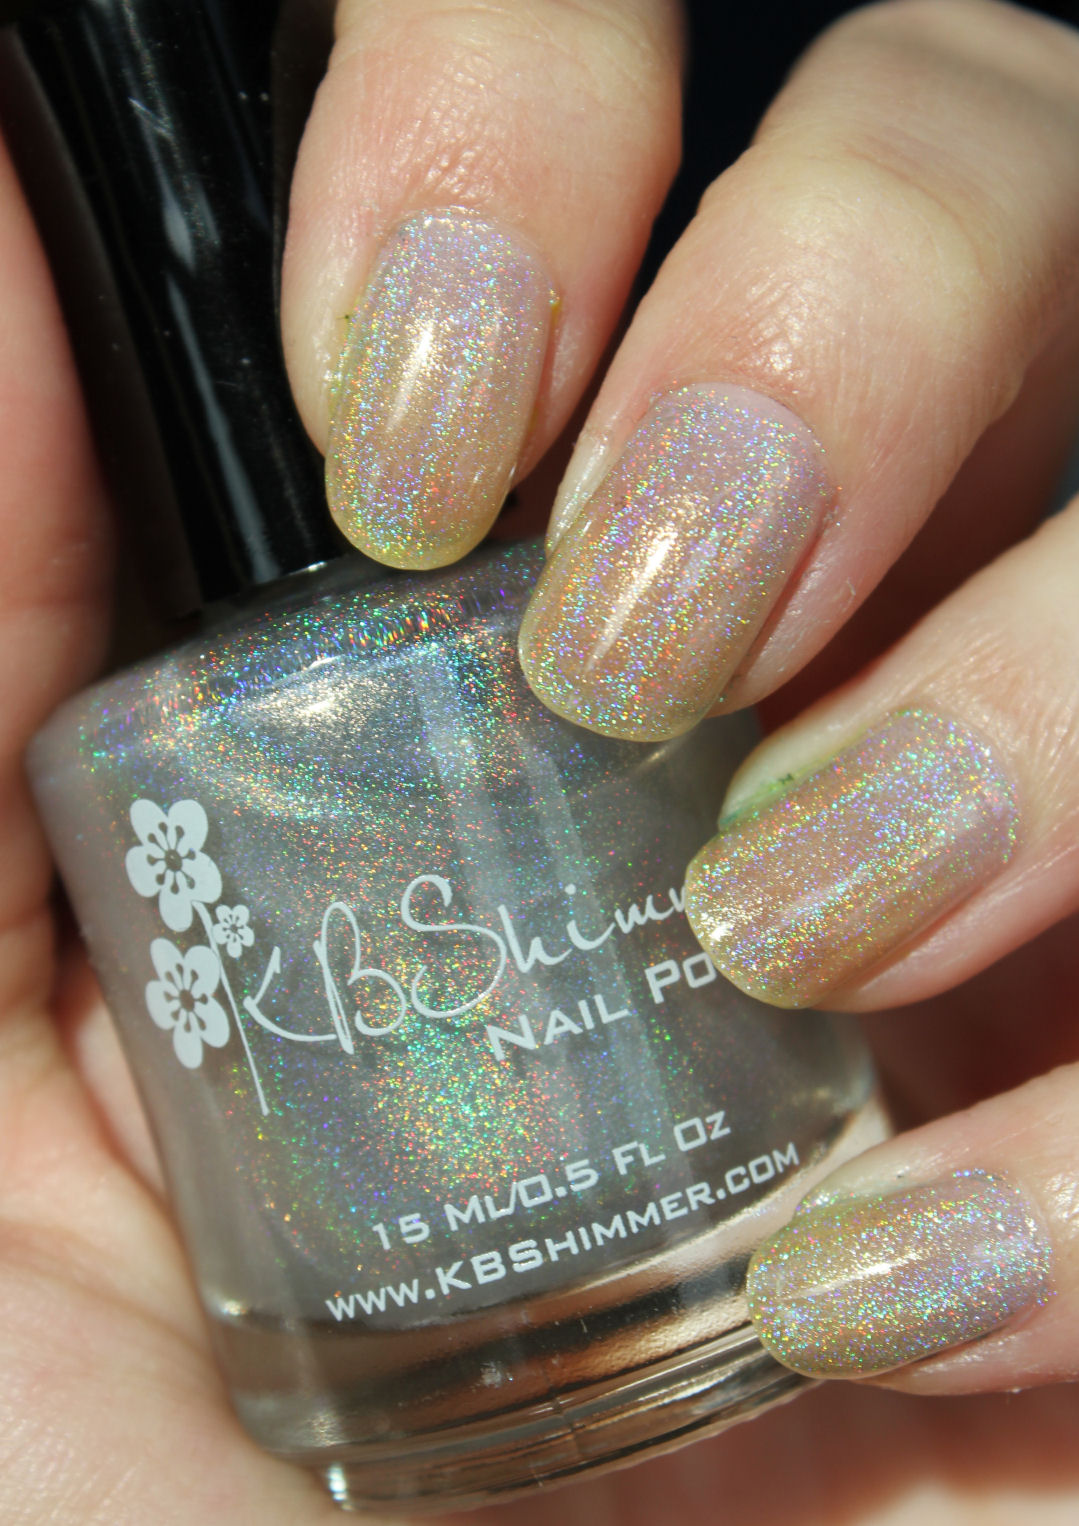 http://lacquediction.blogspot.de/2014/07/kbshimmer-prism-break.html